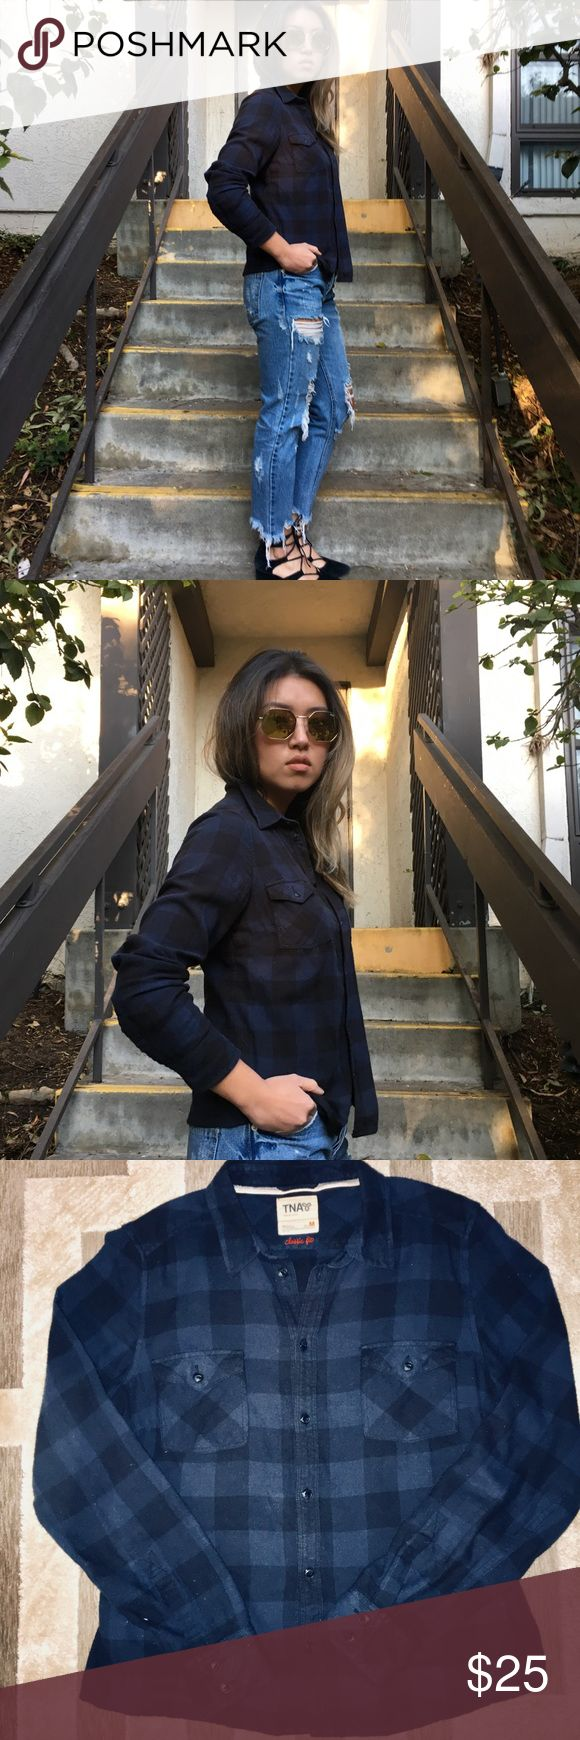 Aritizia TNA Navy and Black Flannel Check shirt M Super cute flannel in black and navy buffalo check. Brand is TNA which is carried at Aritizia. Gently worn TNA Tops Button Down Shirts